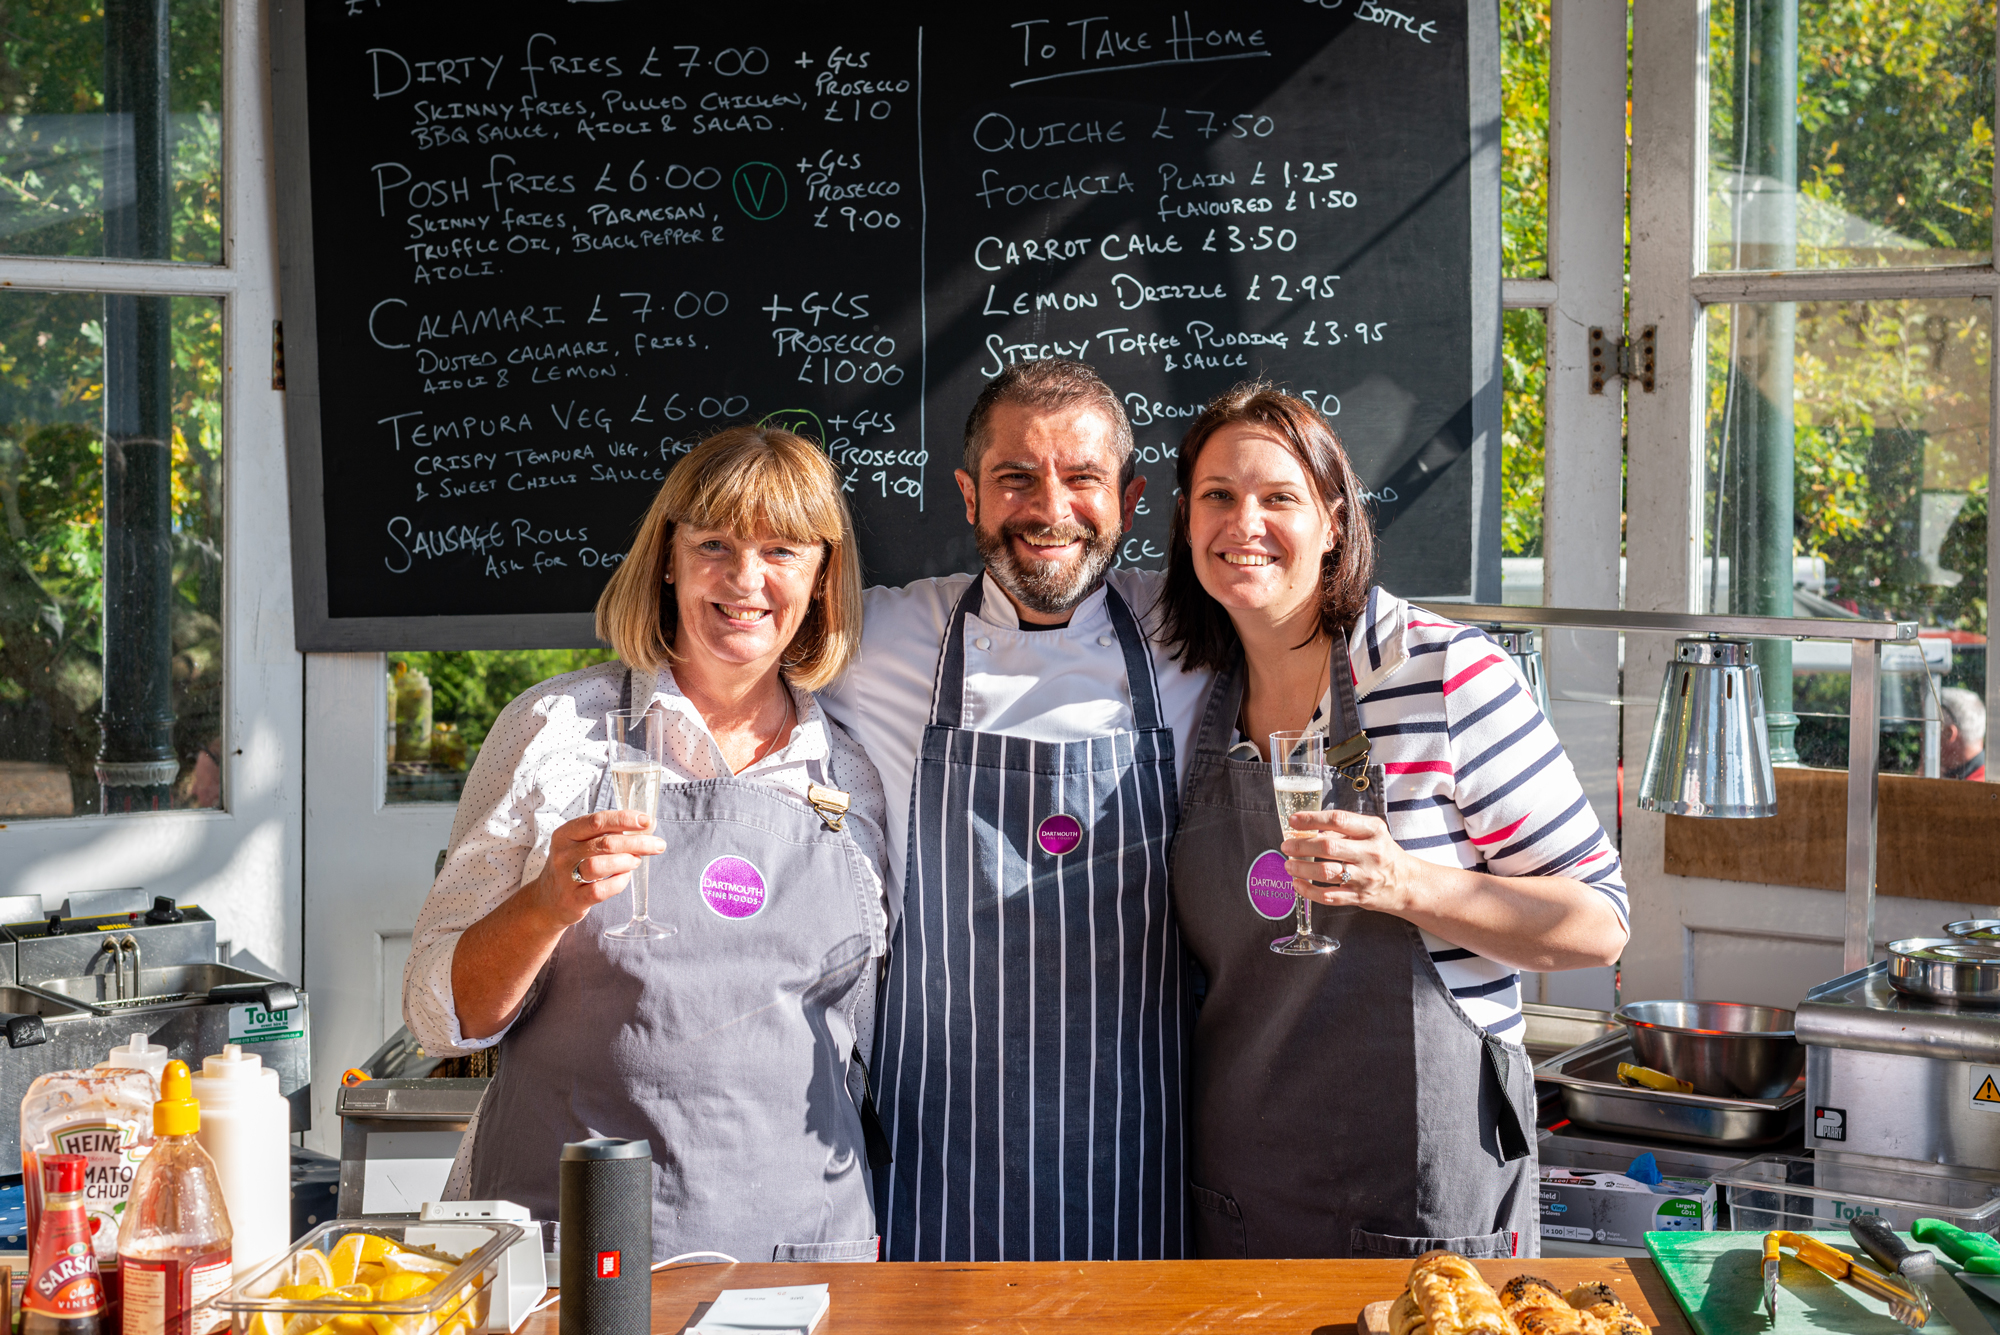 Dartmouth Food Festival 2019 Dartmouth fine foods